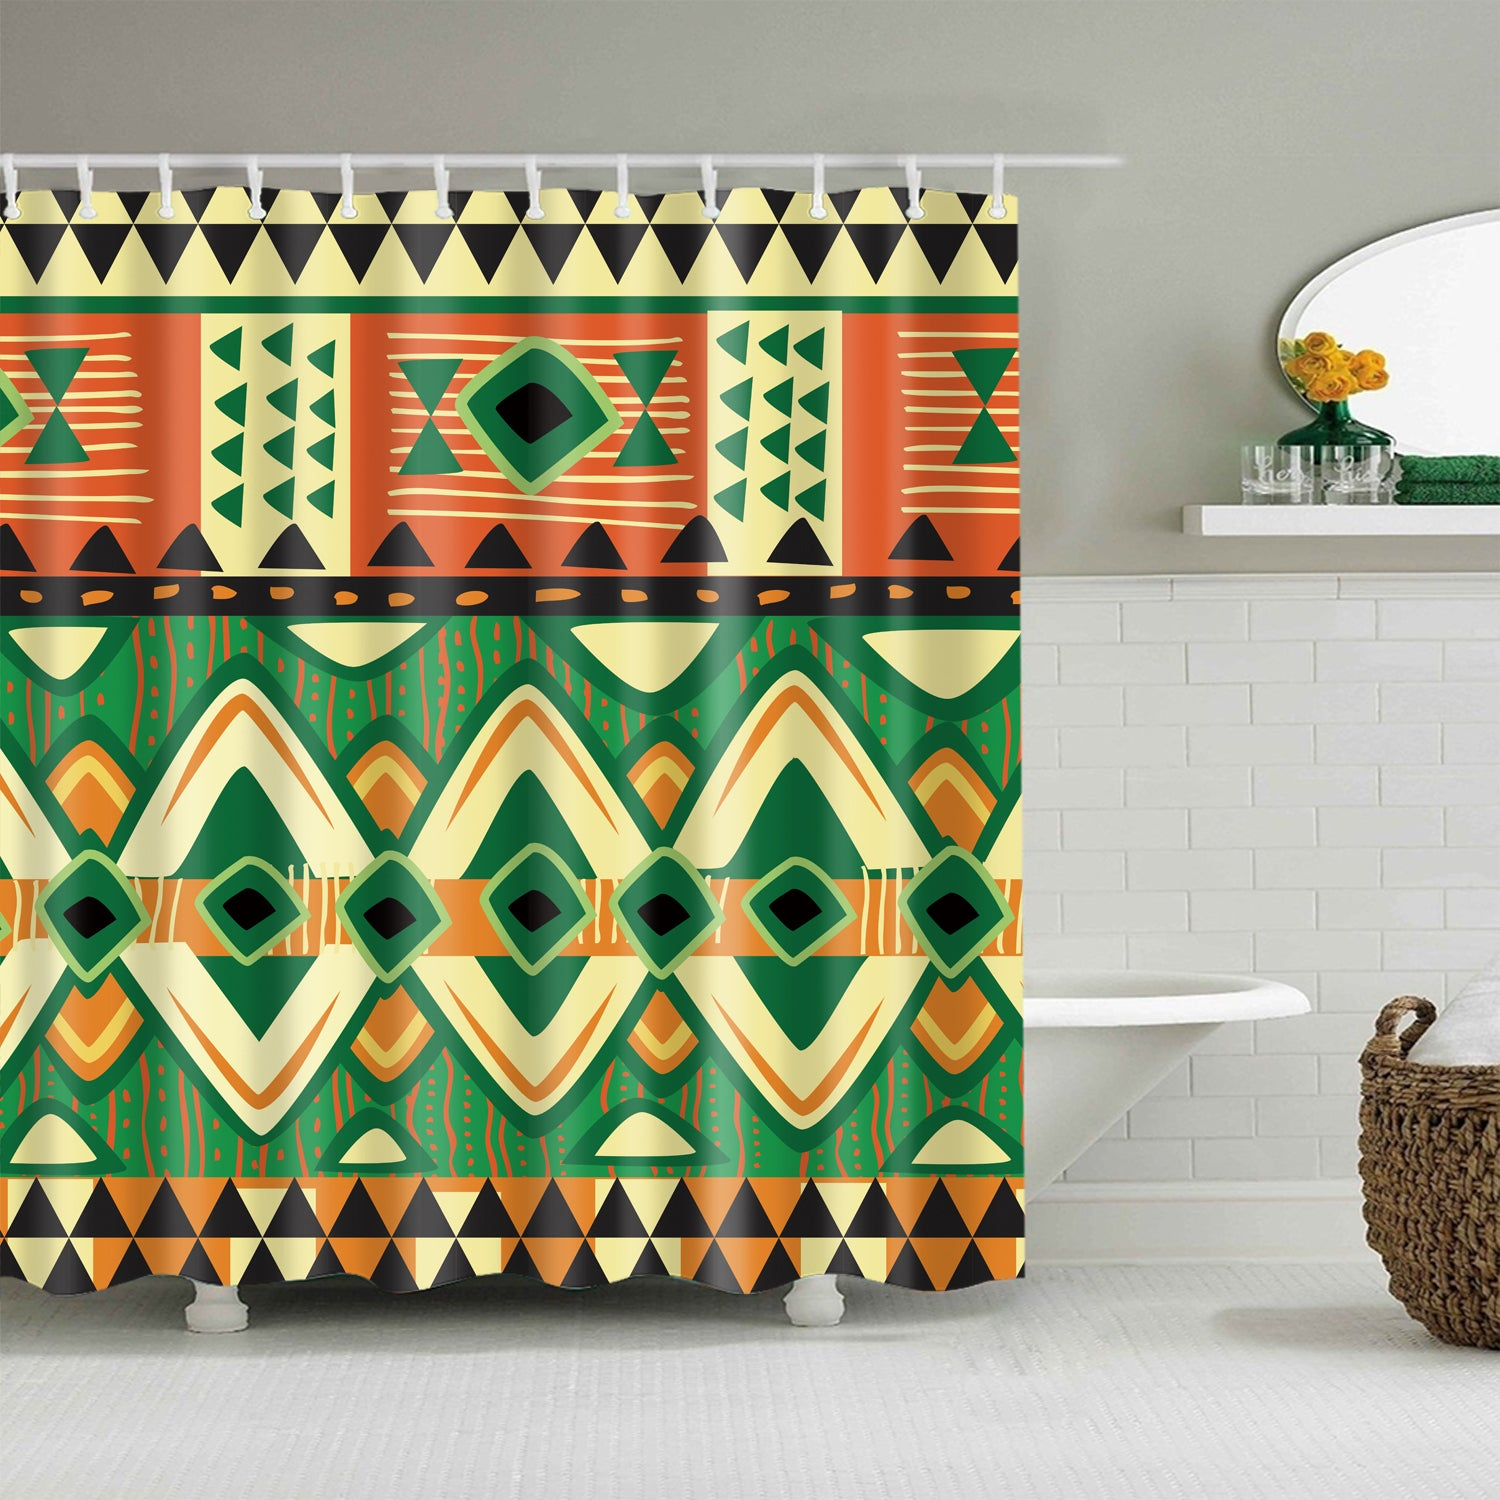 Ethnic Geometric Style Tribal Shower Curtain